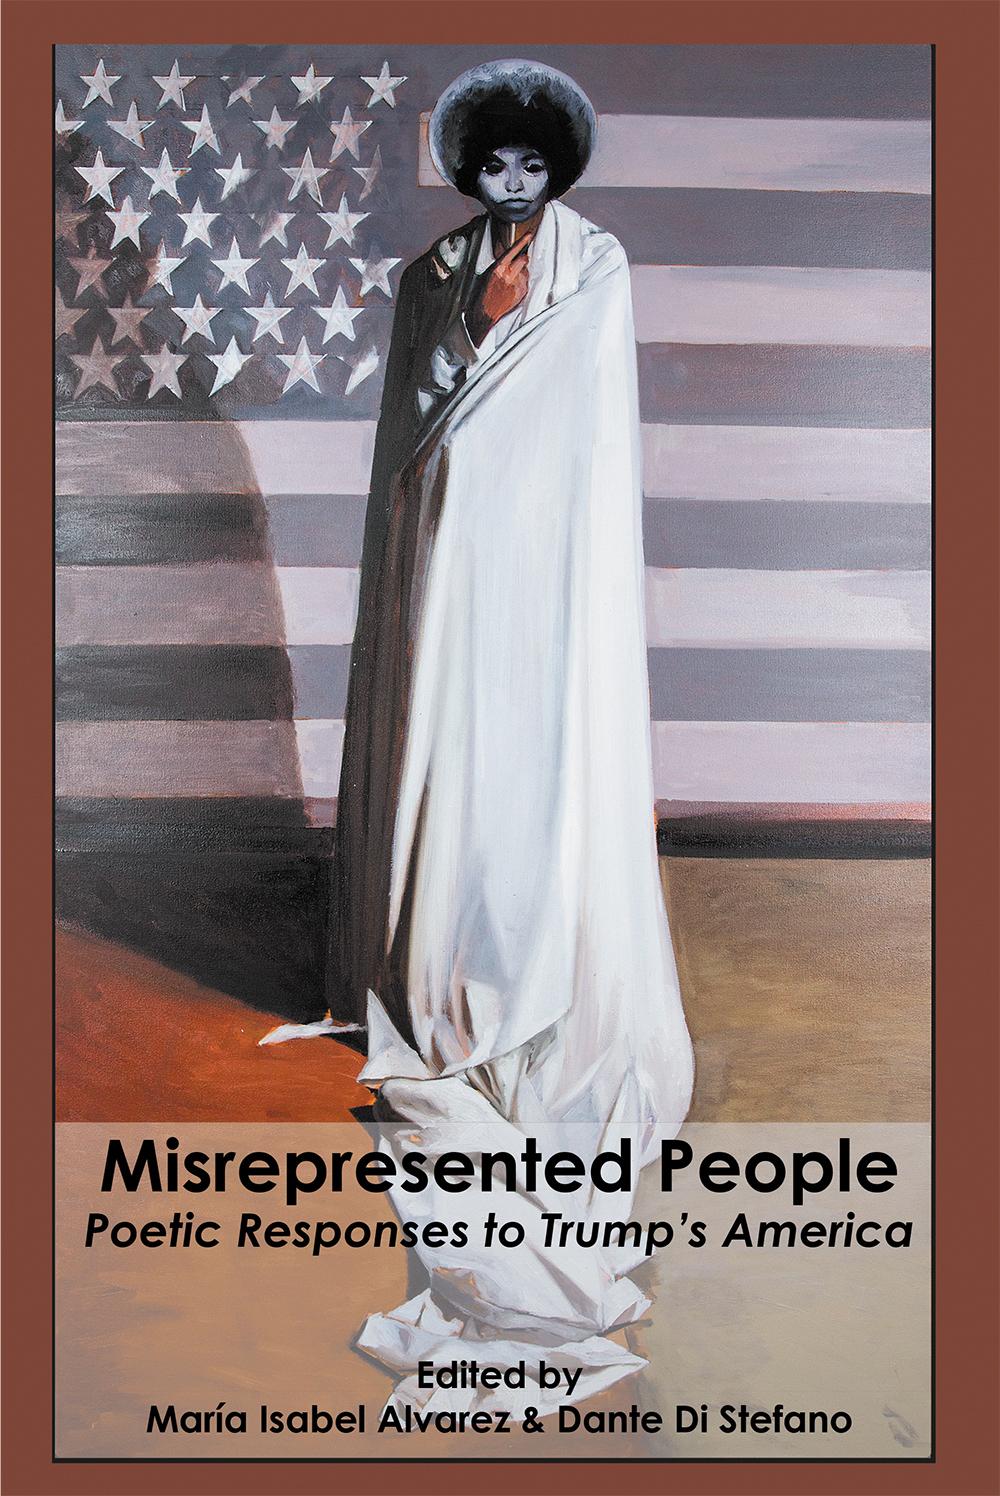 Misrepresented People: Poetic Responses to Trump's America